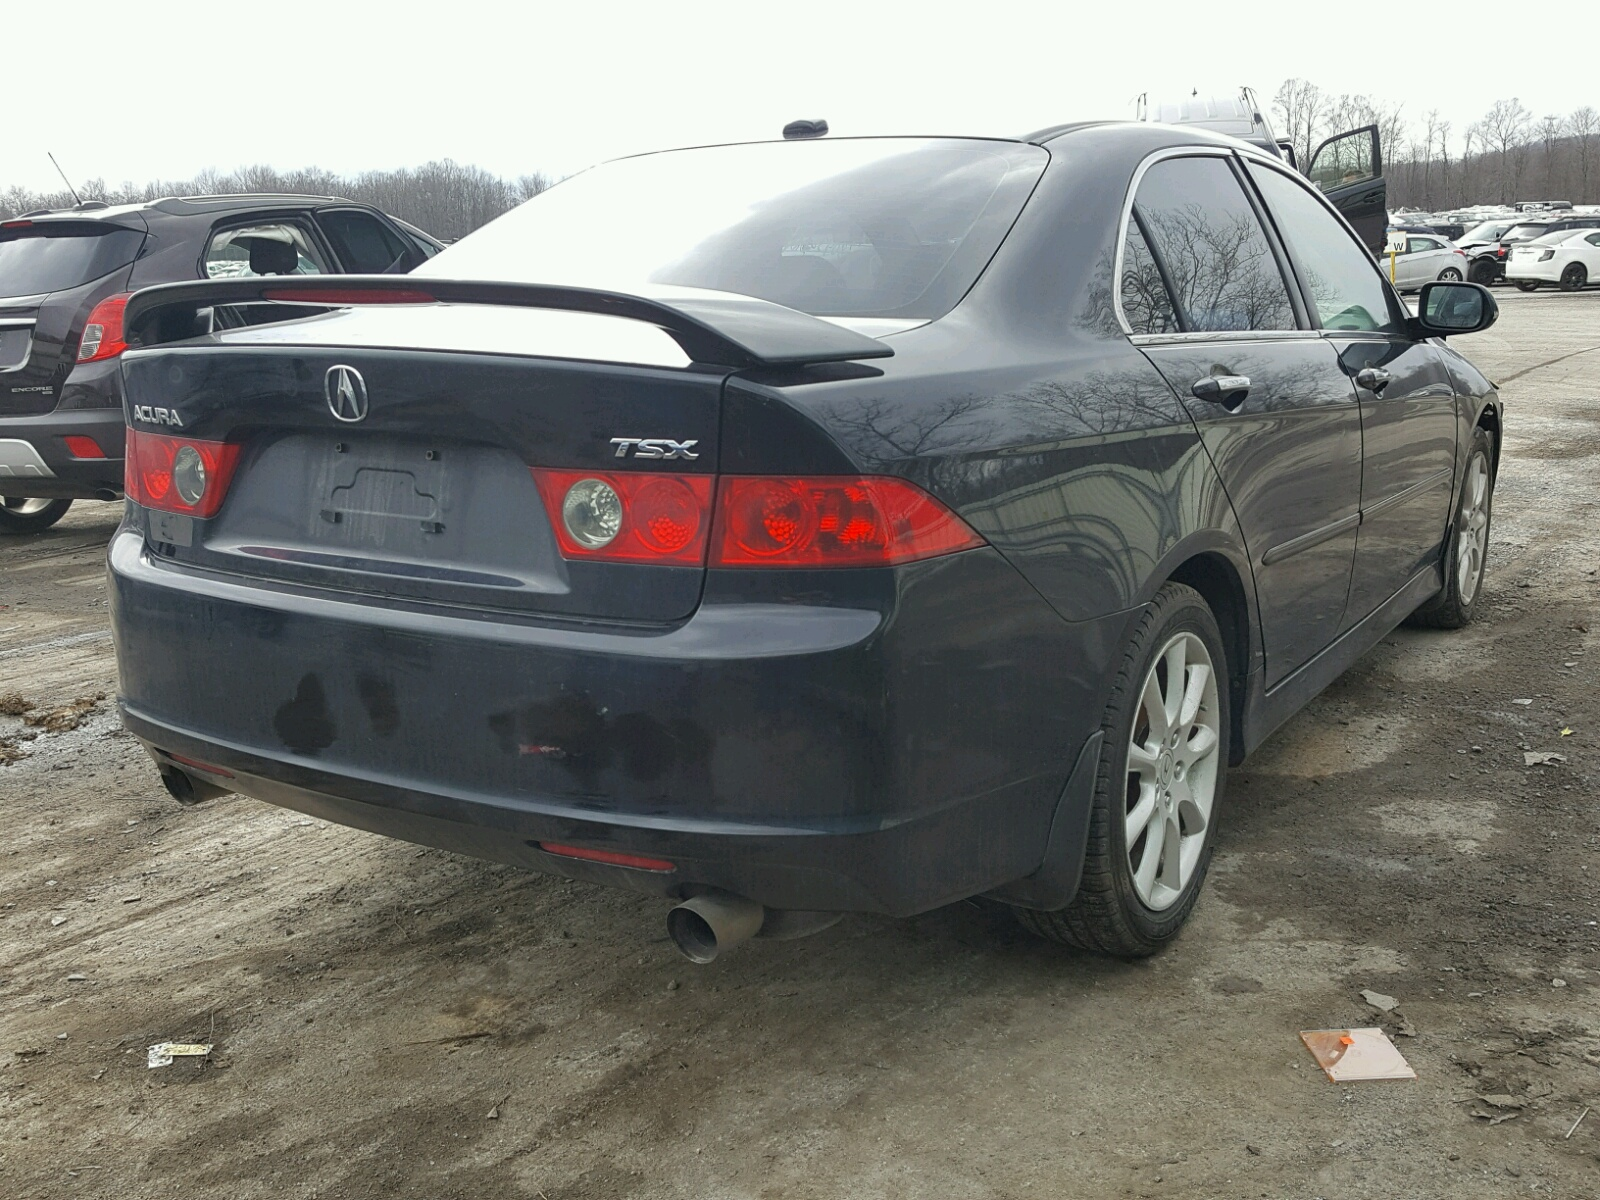 JH4CL96837C016187 | 2007 BLACK ACURA TSX on Sale in PA - PITTSBURGH on